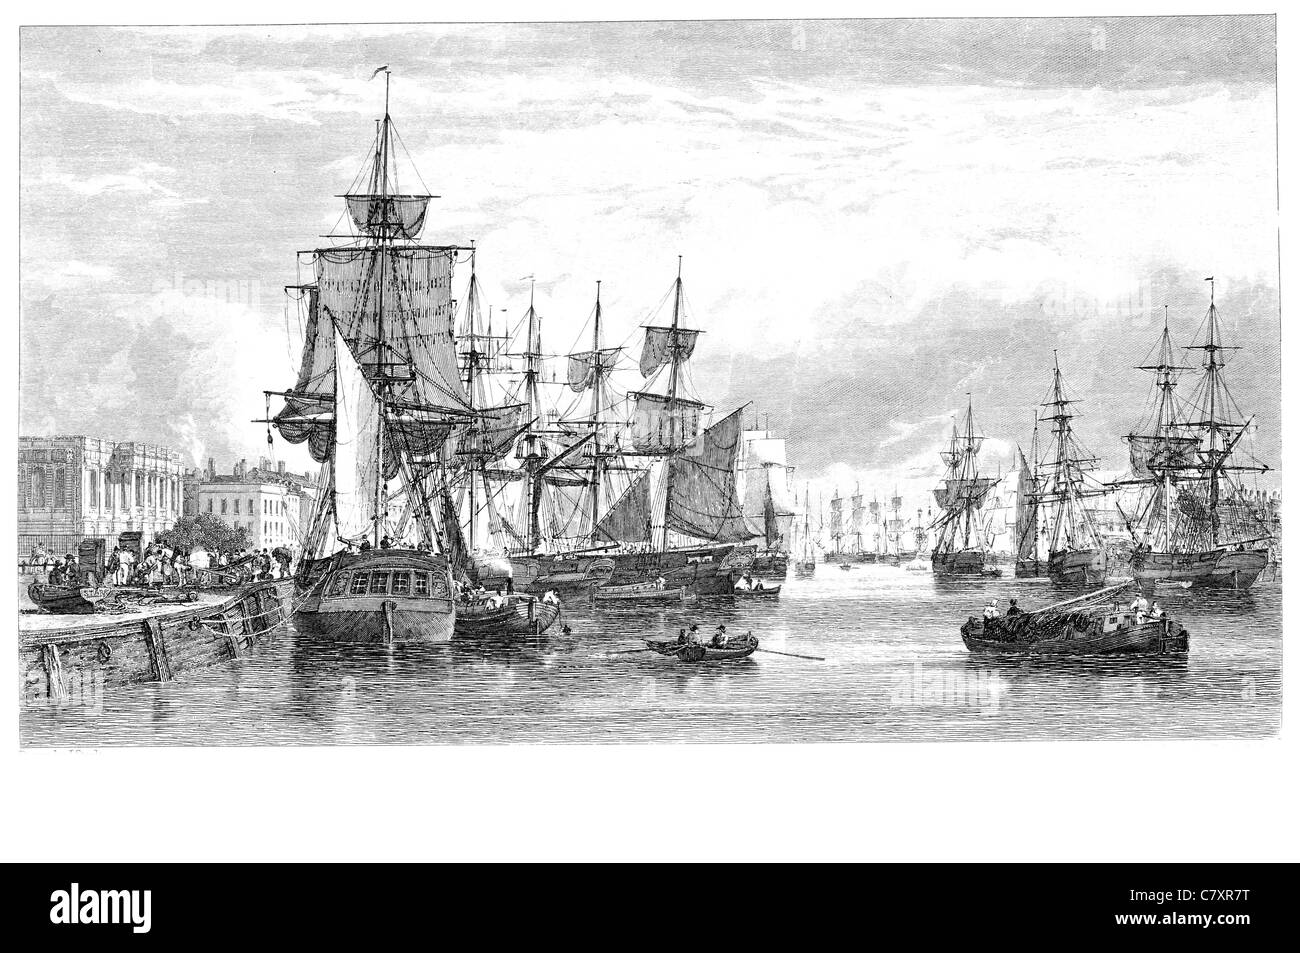 Yarmouth Docks Harbor sail sailing sailor ship ships shipping war marine vessel cargo goods seas sea transport fishing - Stock Image